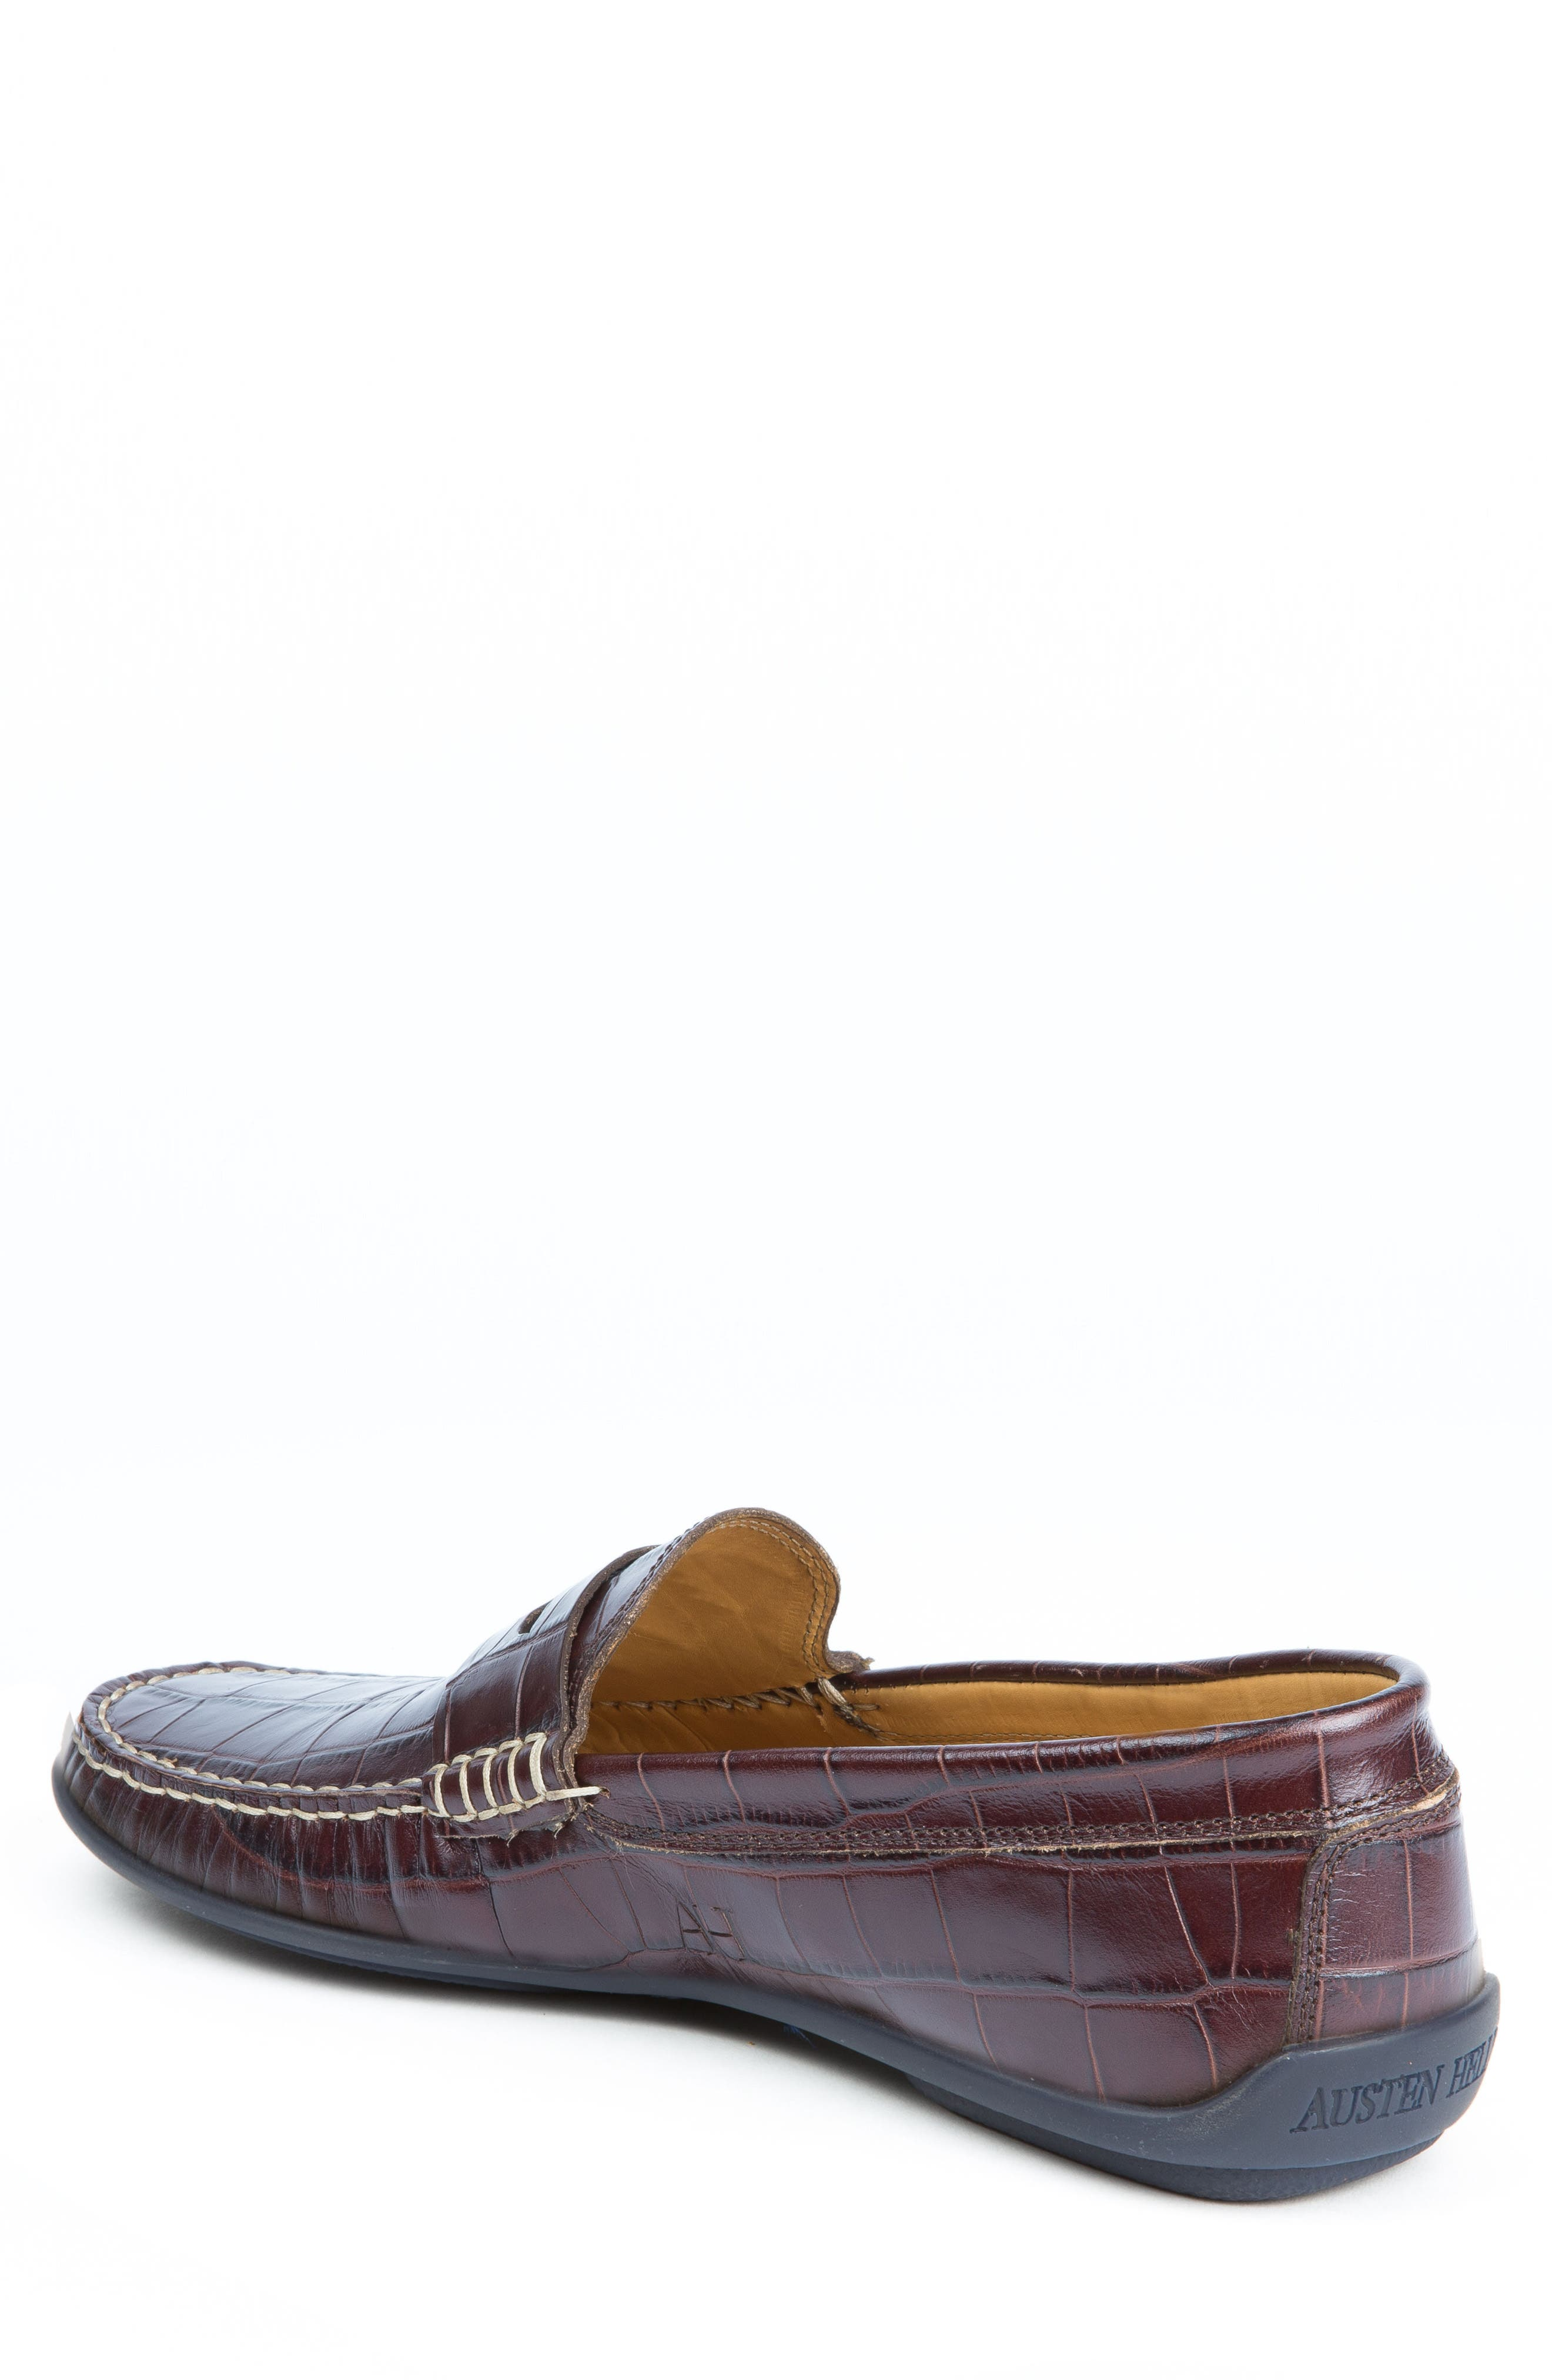 'Waverly' Leather Penny Loafer,                             Alternate thumbnail 2, color,                             BROWN